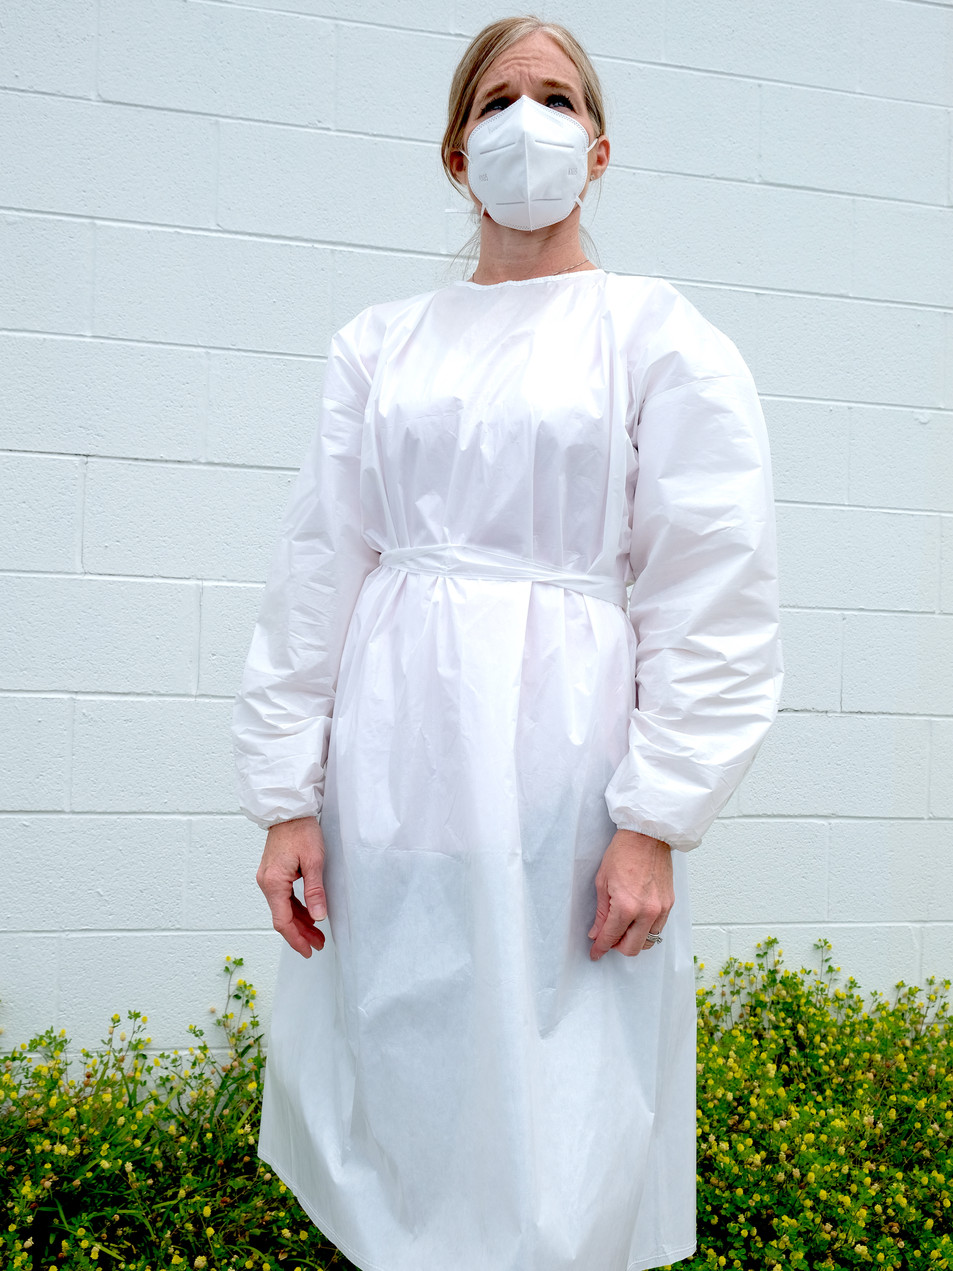 $1.50 Per Gown